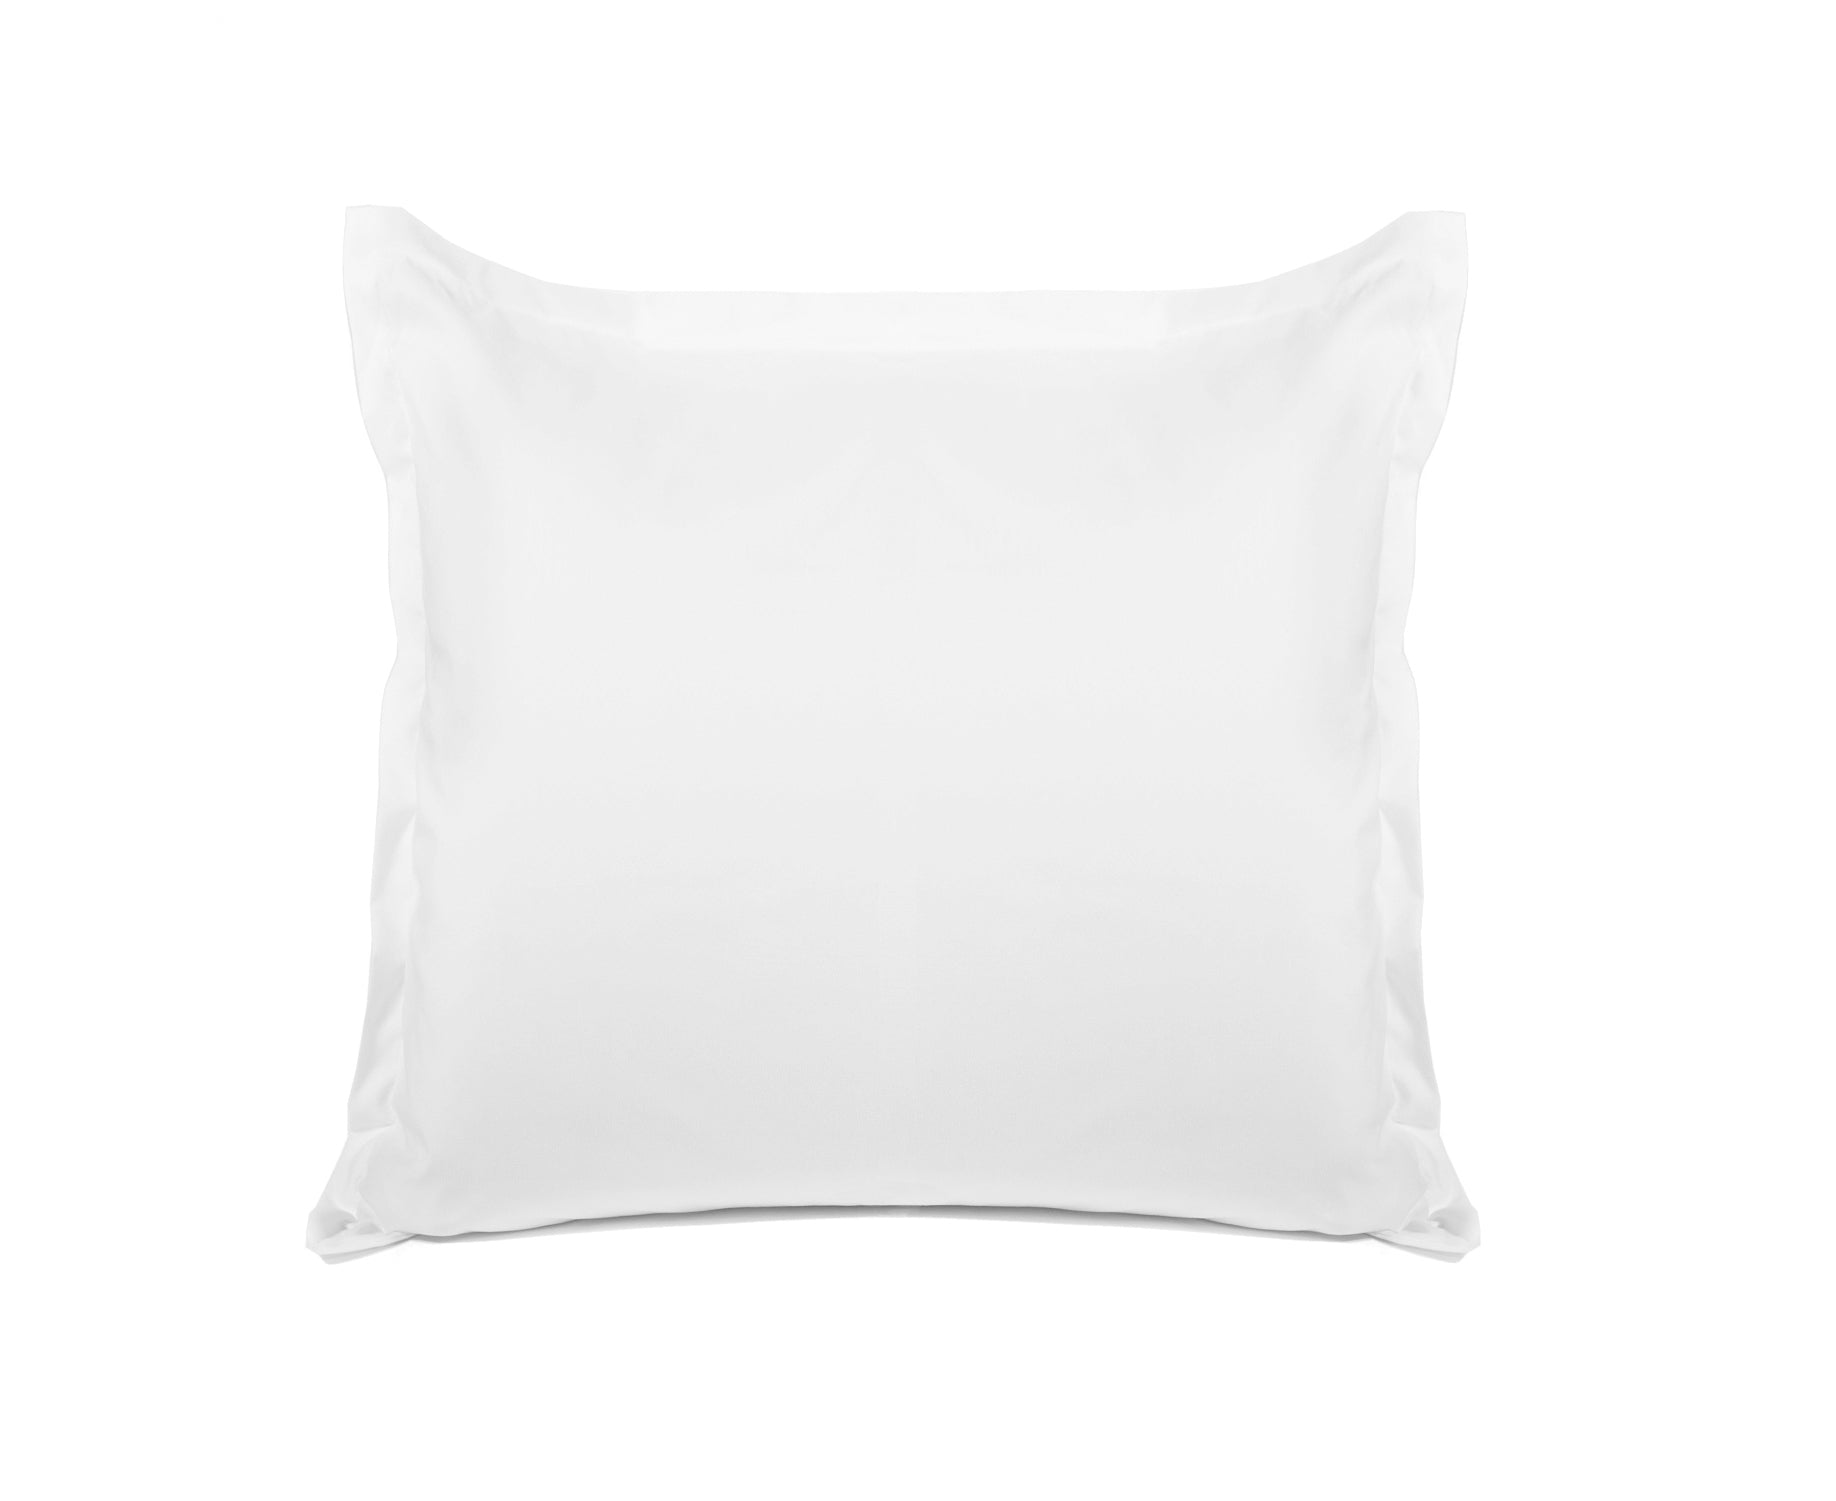 Cursive (Monogram) - Personalized Kids Pillowcase Collection-Di Lewis